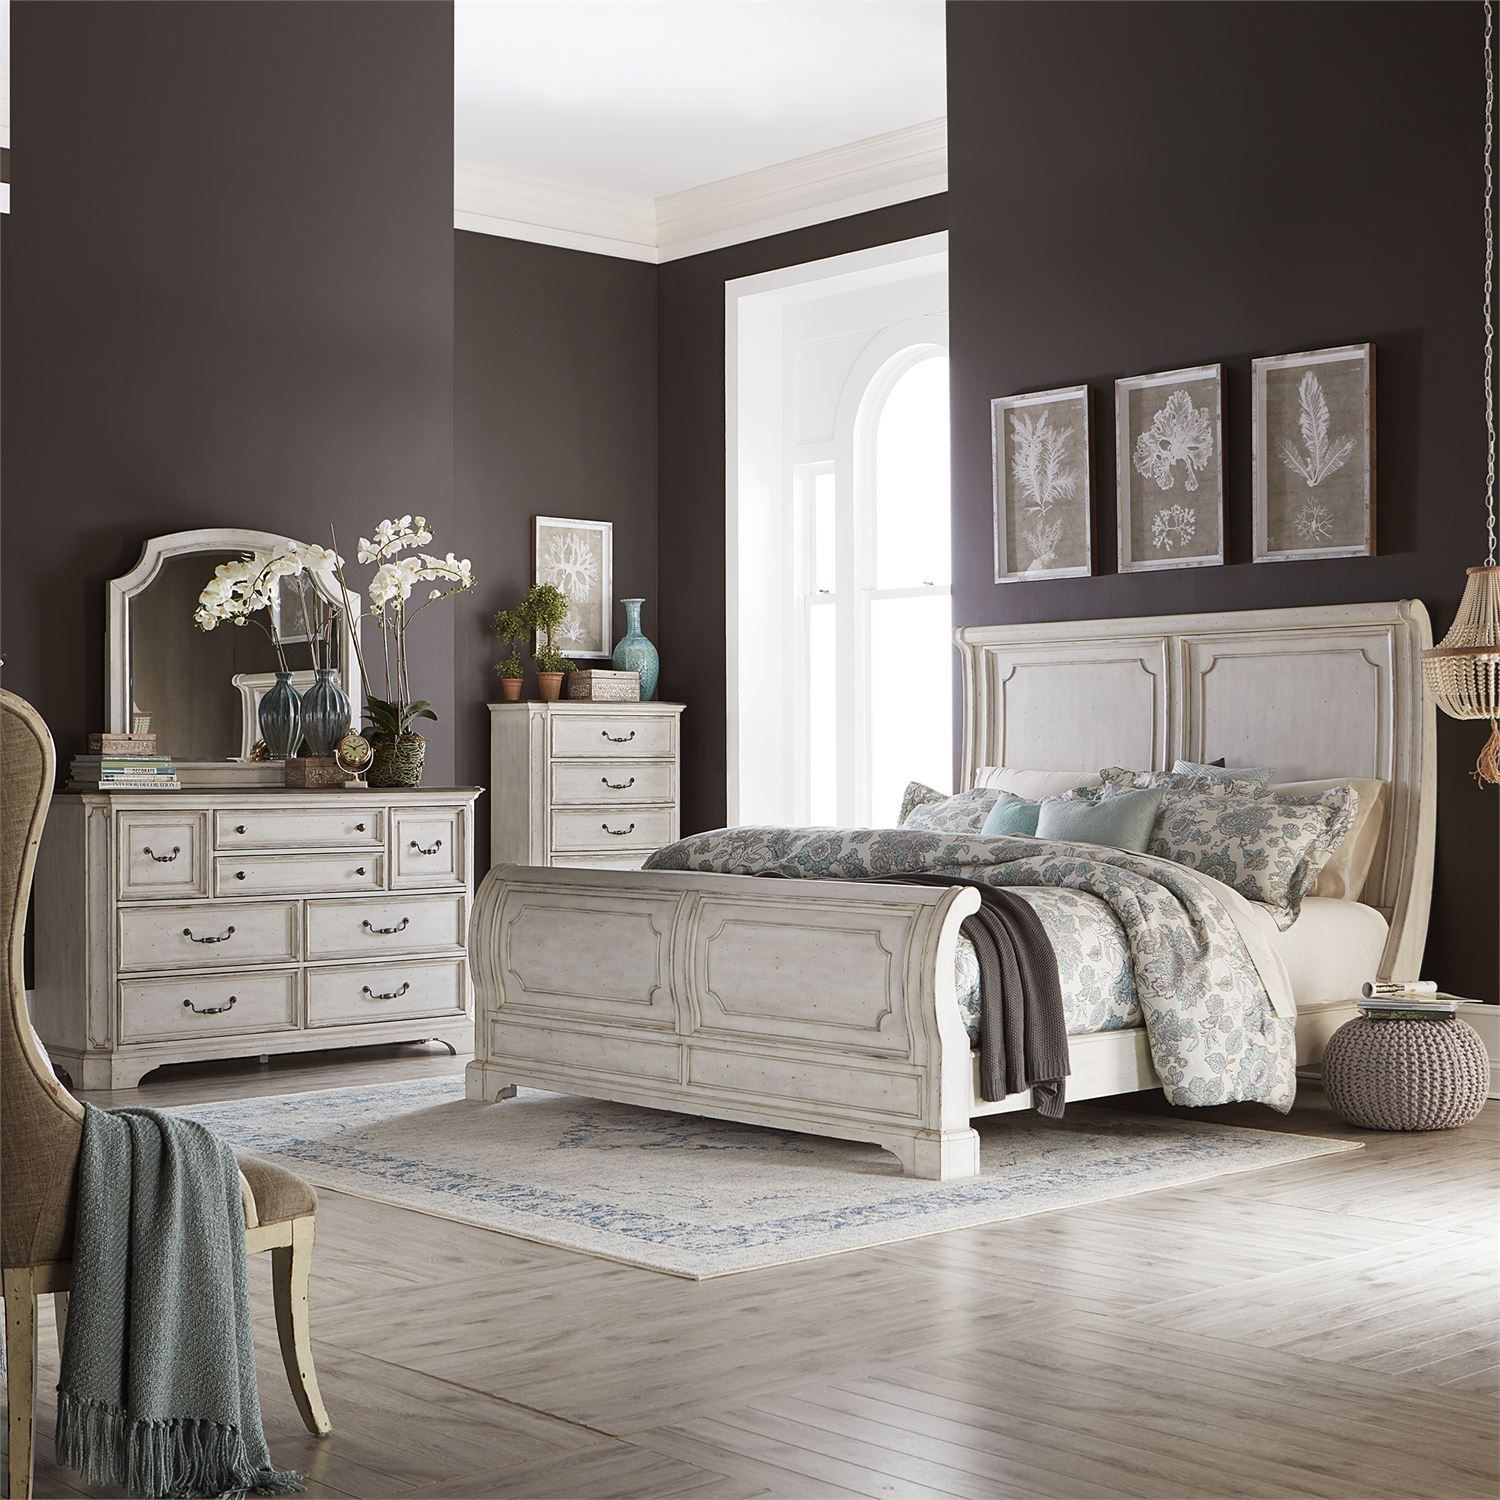 Abbey Road Queen Bedroom Group by Liberty Furniture at Corner Furniture